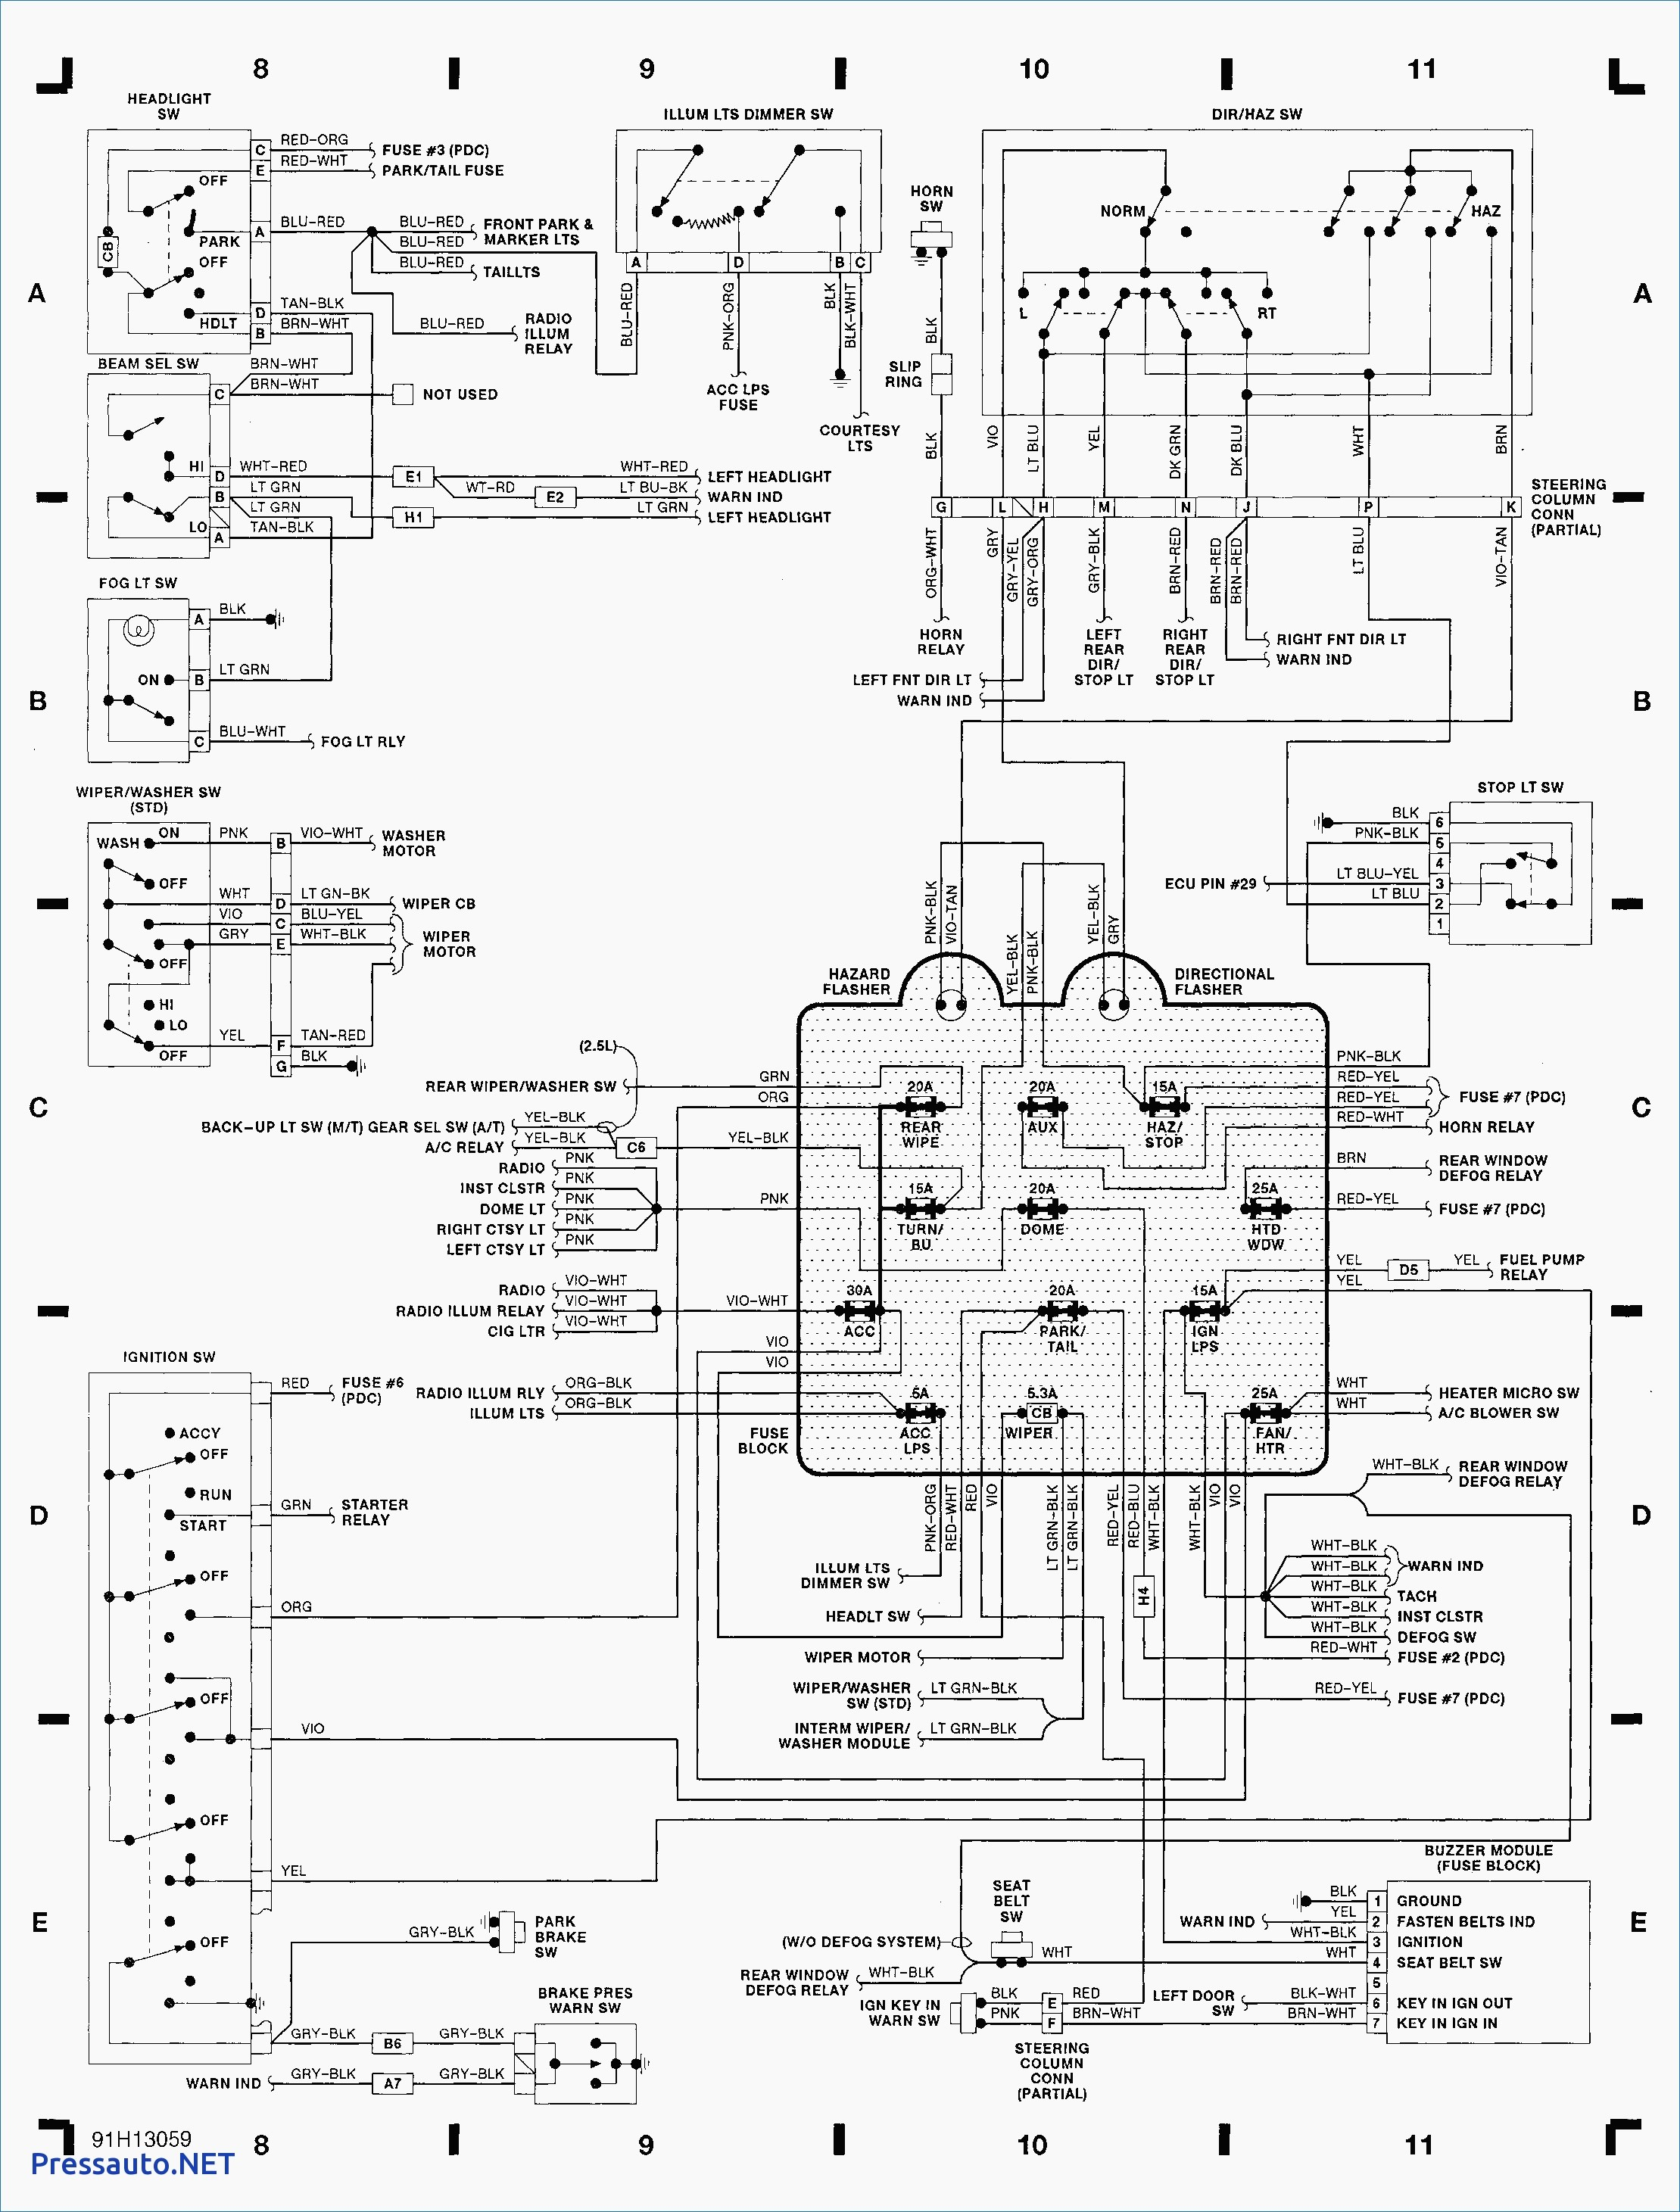 DIAGRAM] 2010 Jeepmander Radio Wiring Diagram FULL Version HD Quality Wiring  Diagram - MATE-DIAGRAM.RADD.FRDiagram Database - Radd